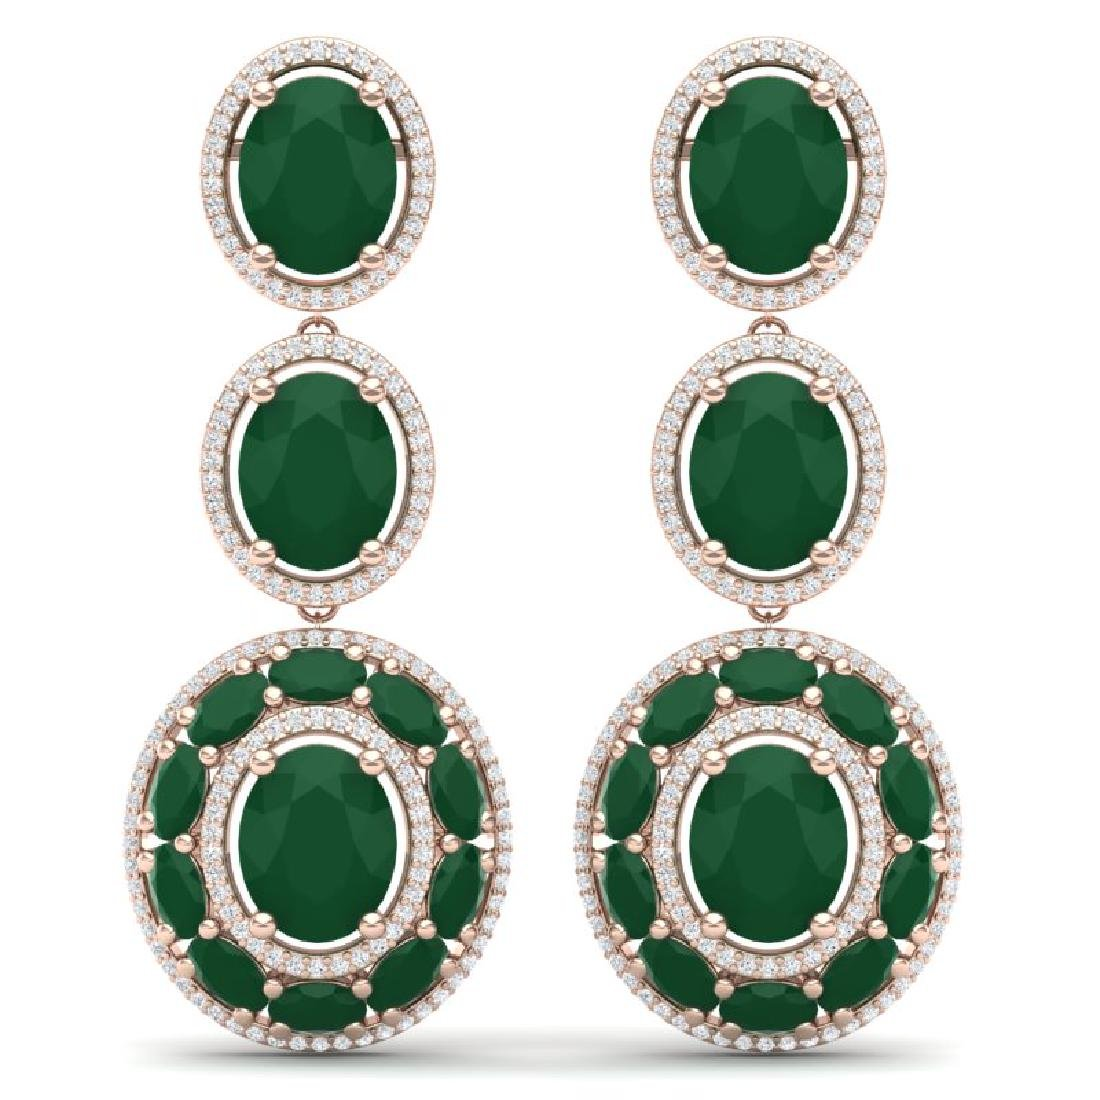 32.84 CTW Royalty Emerald & VS Diamond Earrings 18K